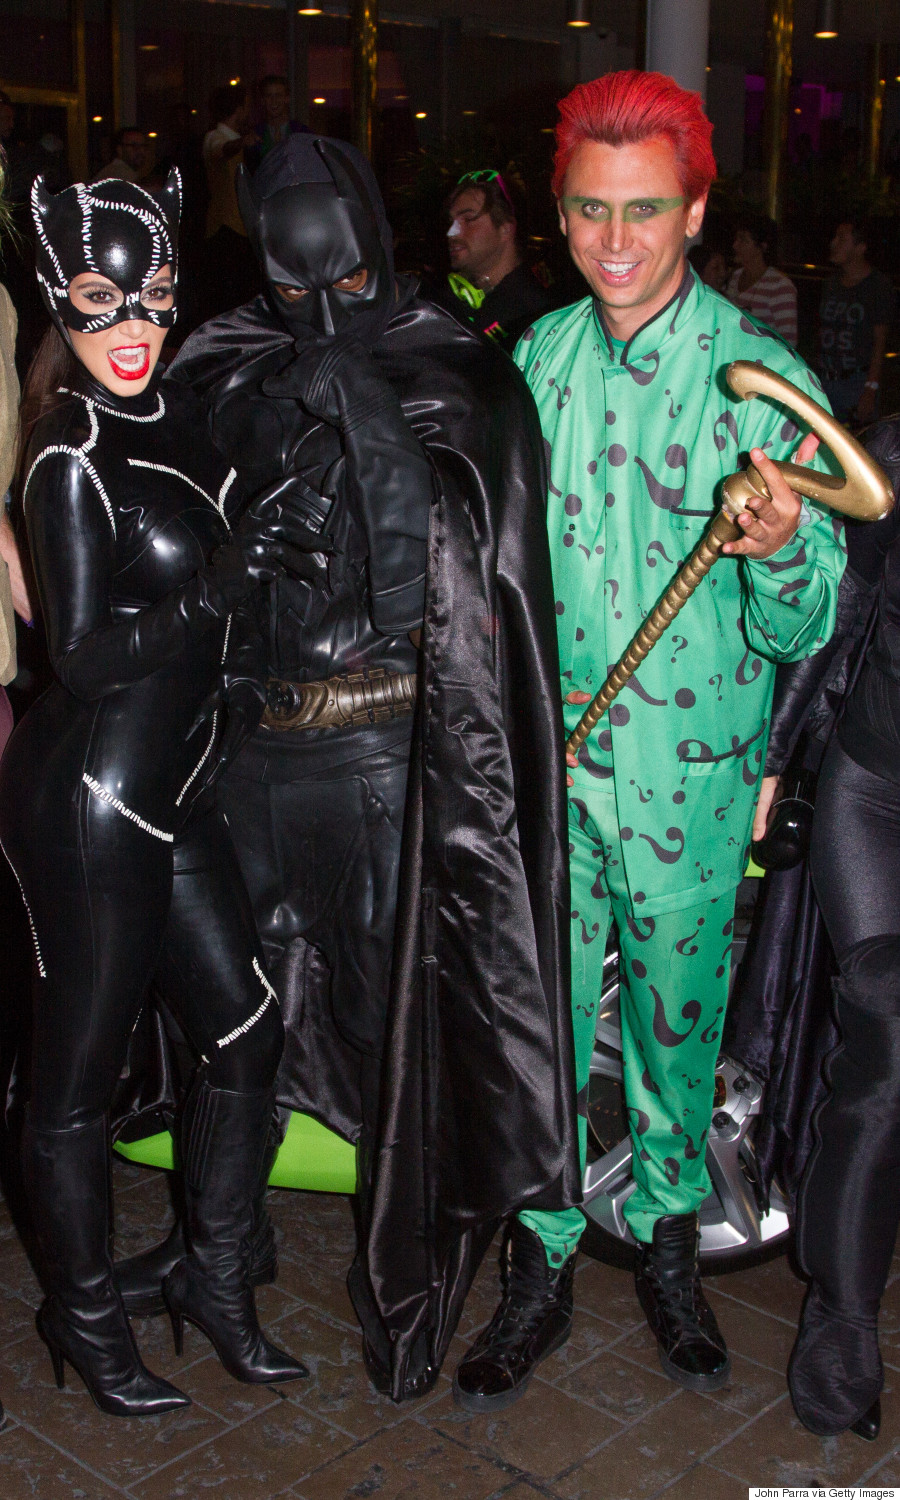 The 20 Best Celebrity Halloween Costumes Of All-Time